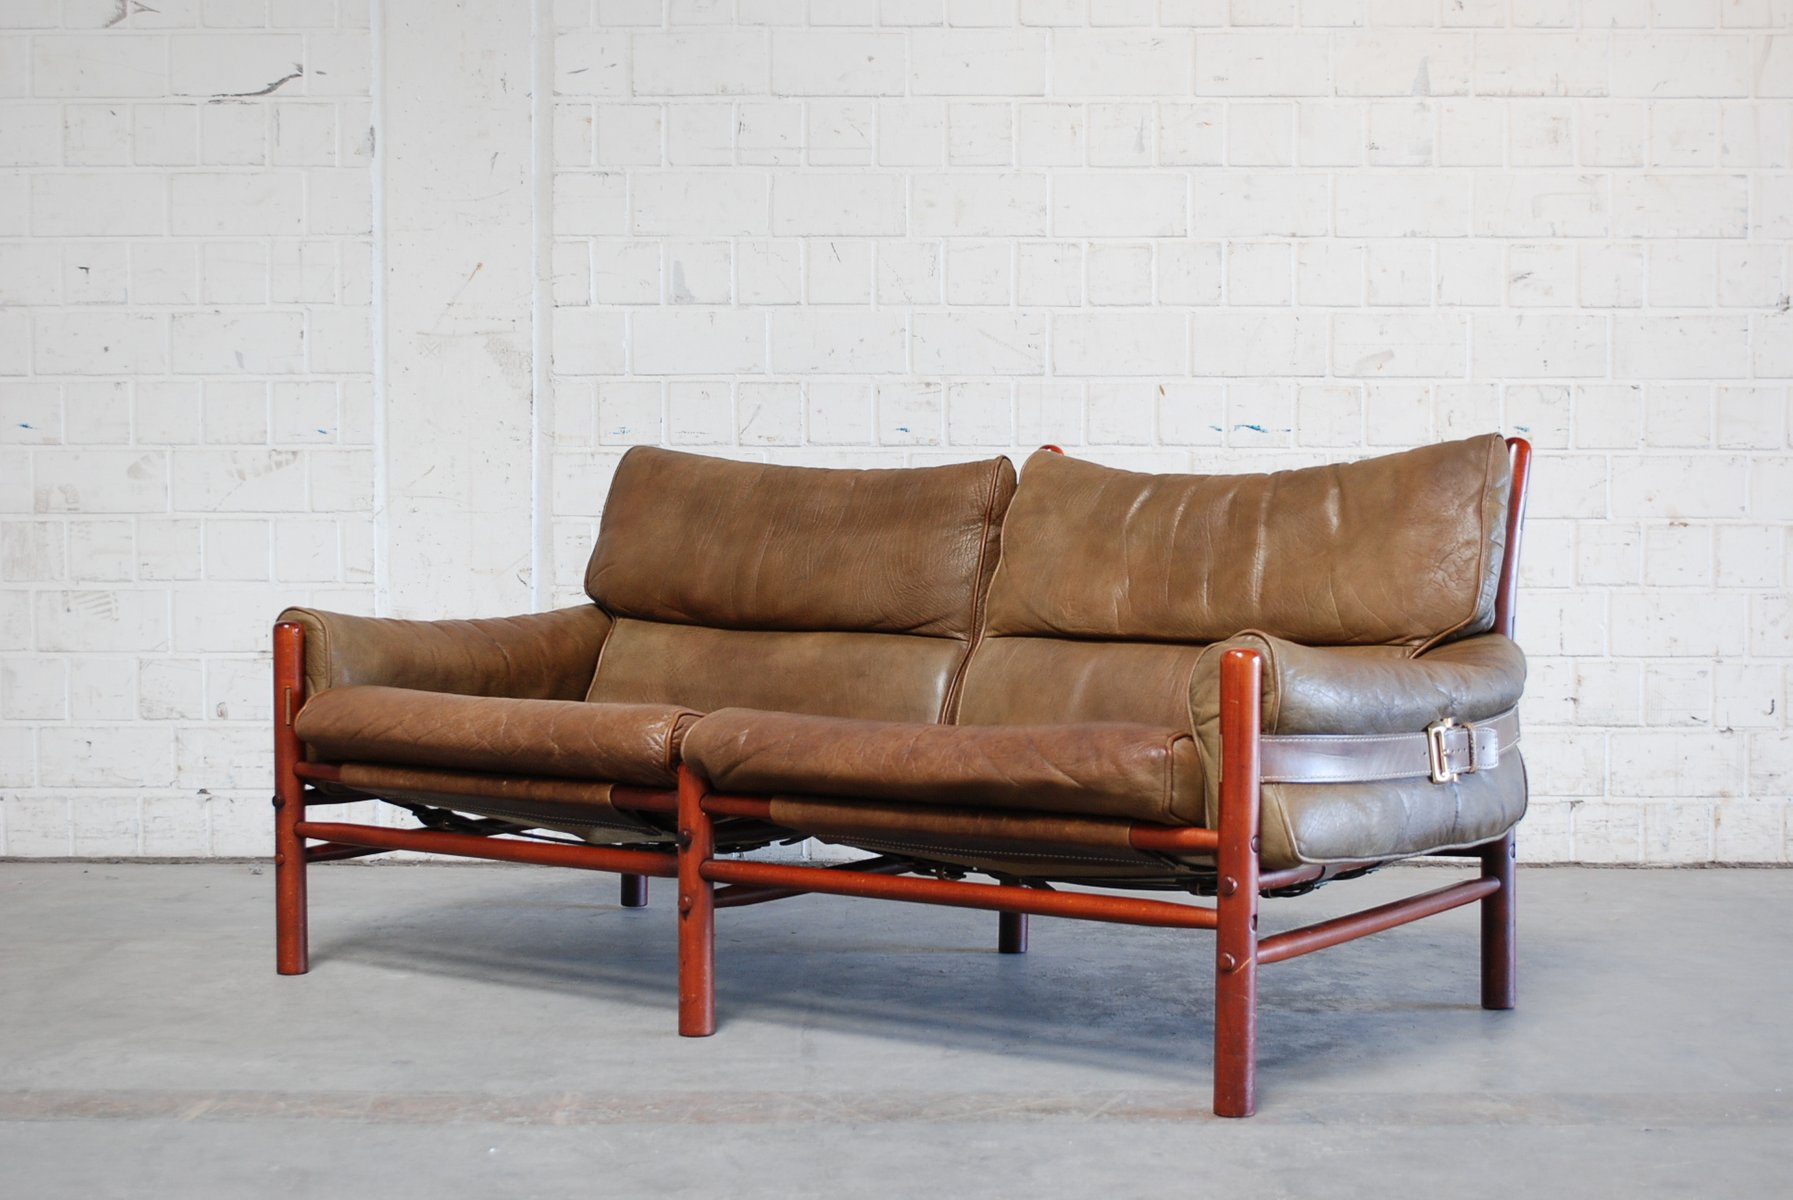 vintage kontiki 2 sitzer ledersofa von arne norell bei pamono kaufen. Black Bedroom Furniture Sets. Home Design Ideas